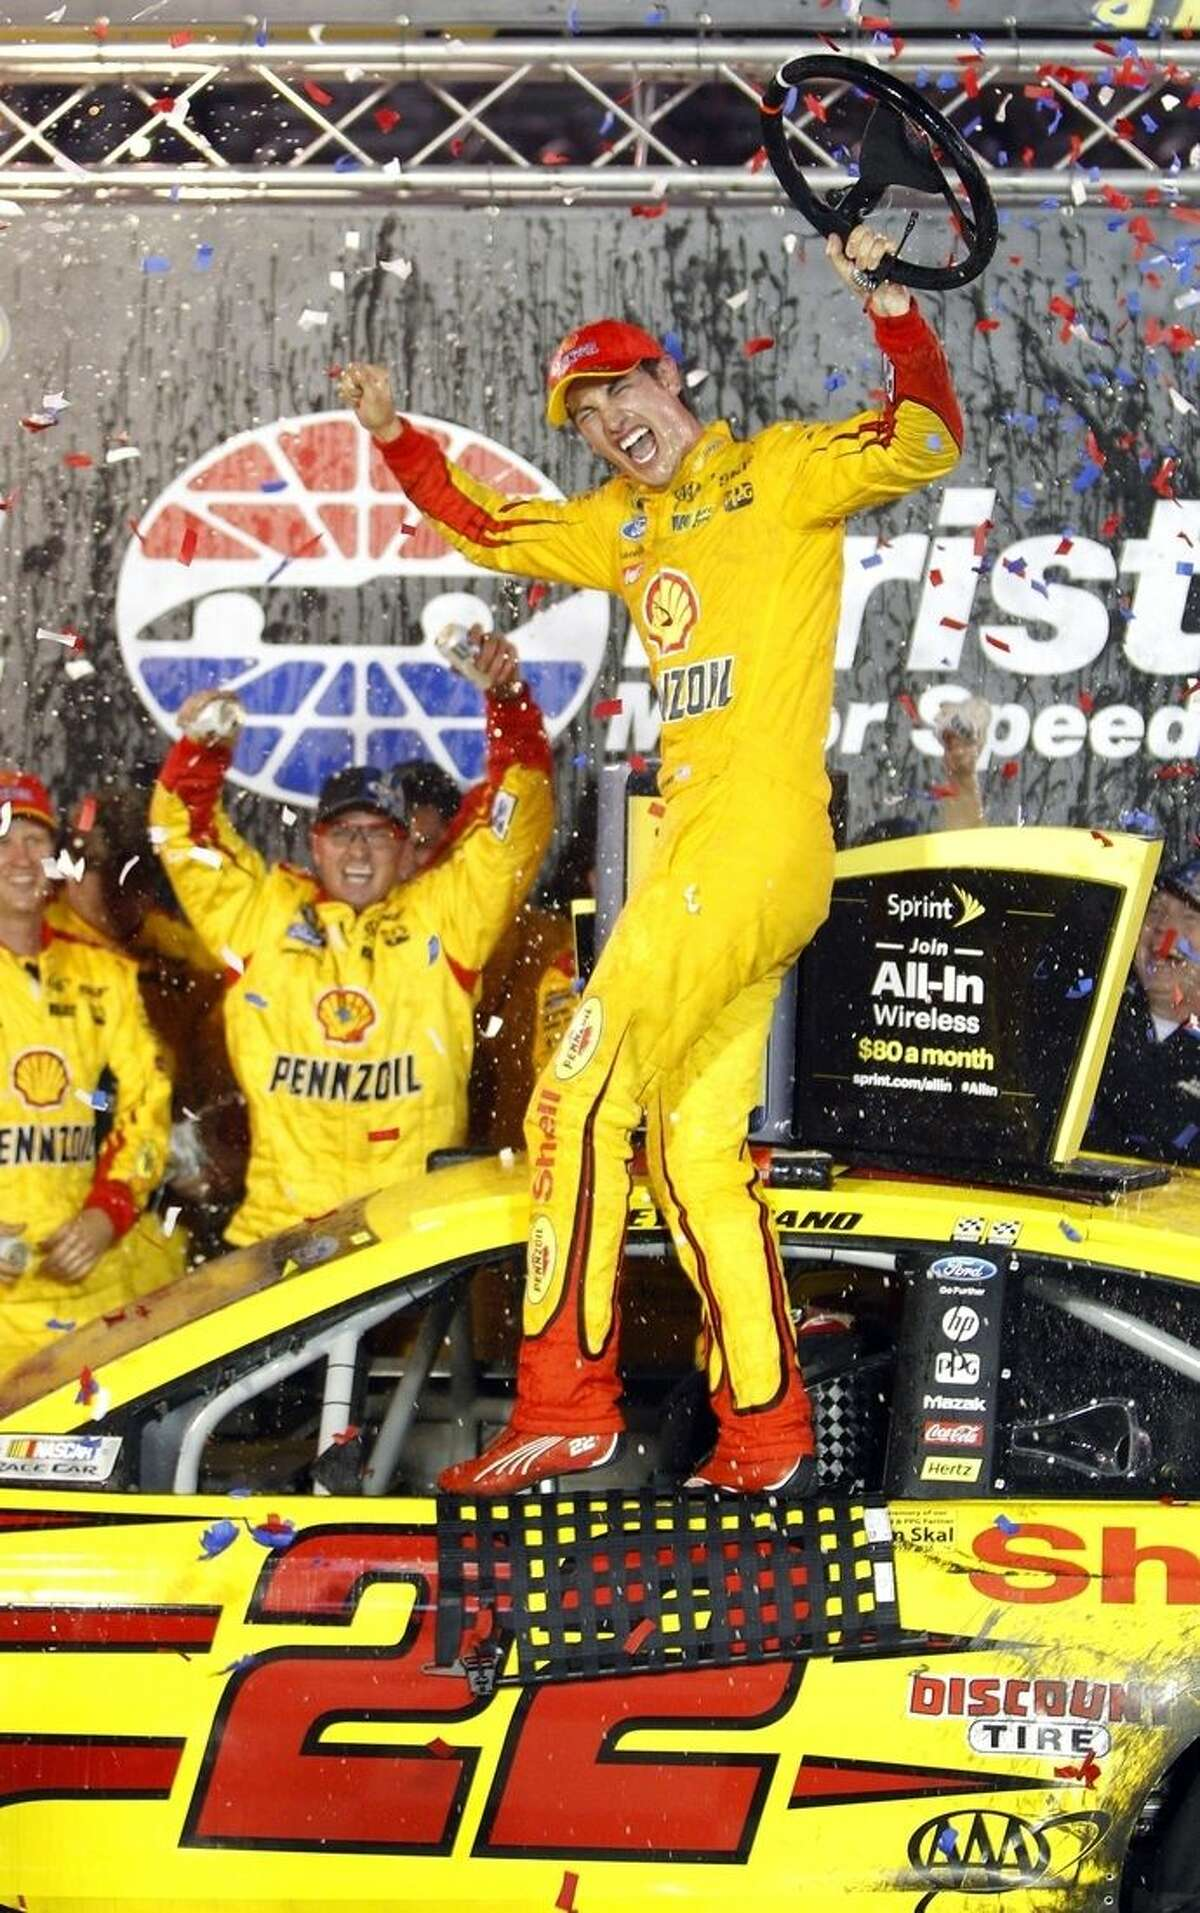 Joey Logano celabrates in Victory Lane after winning the NASCAR Sprint Cup Series auto race, Saturday, Aug. 22, 2015, in Bristol, Tenn. (AP Photo/Wade Payne)